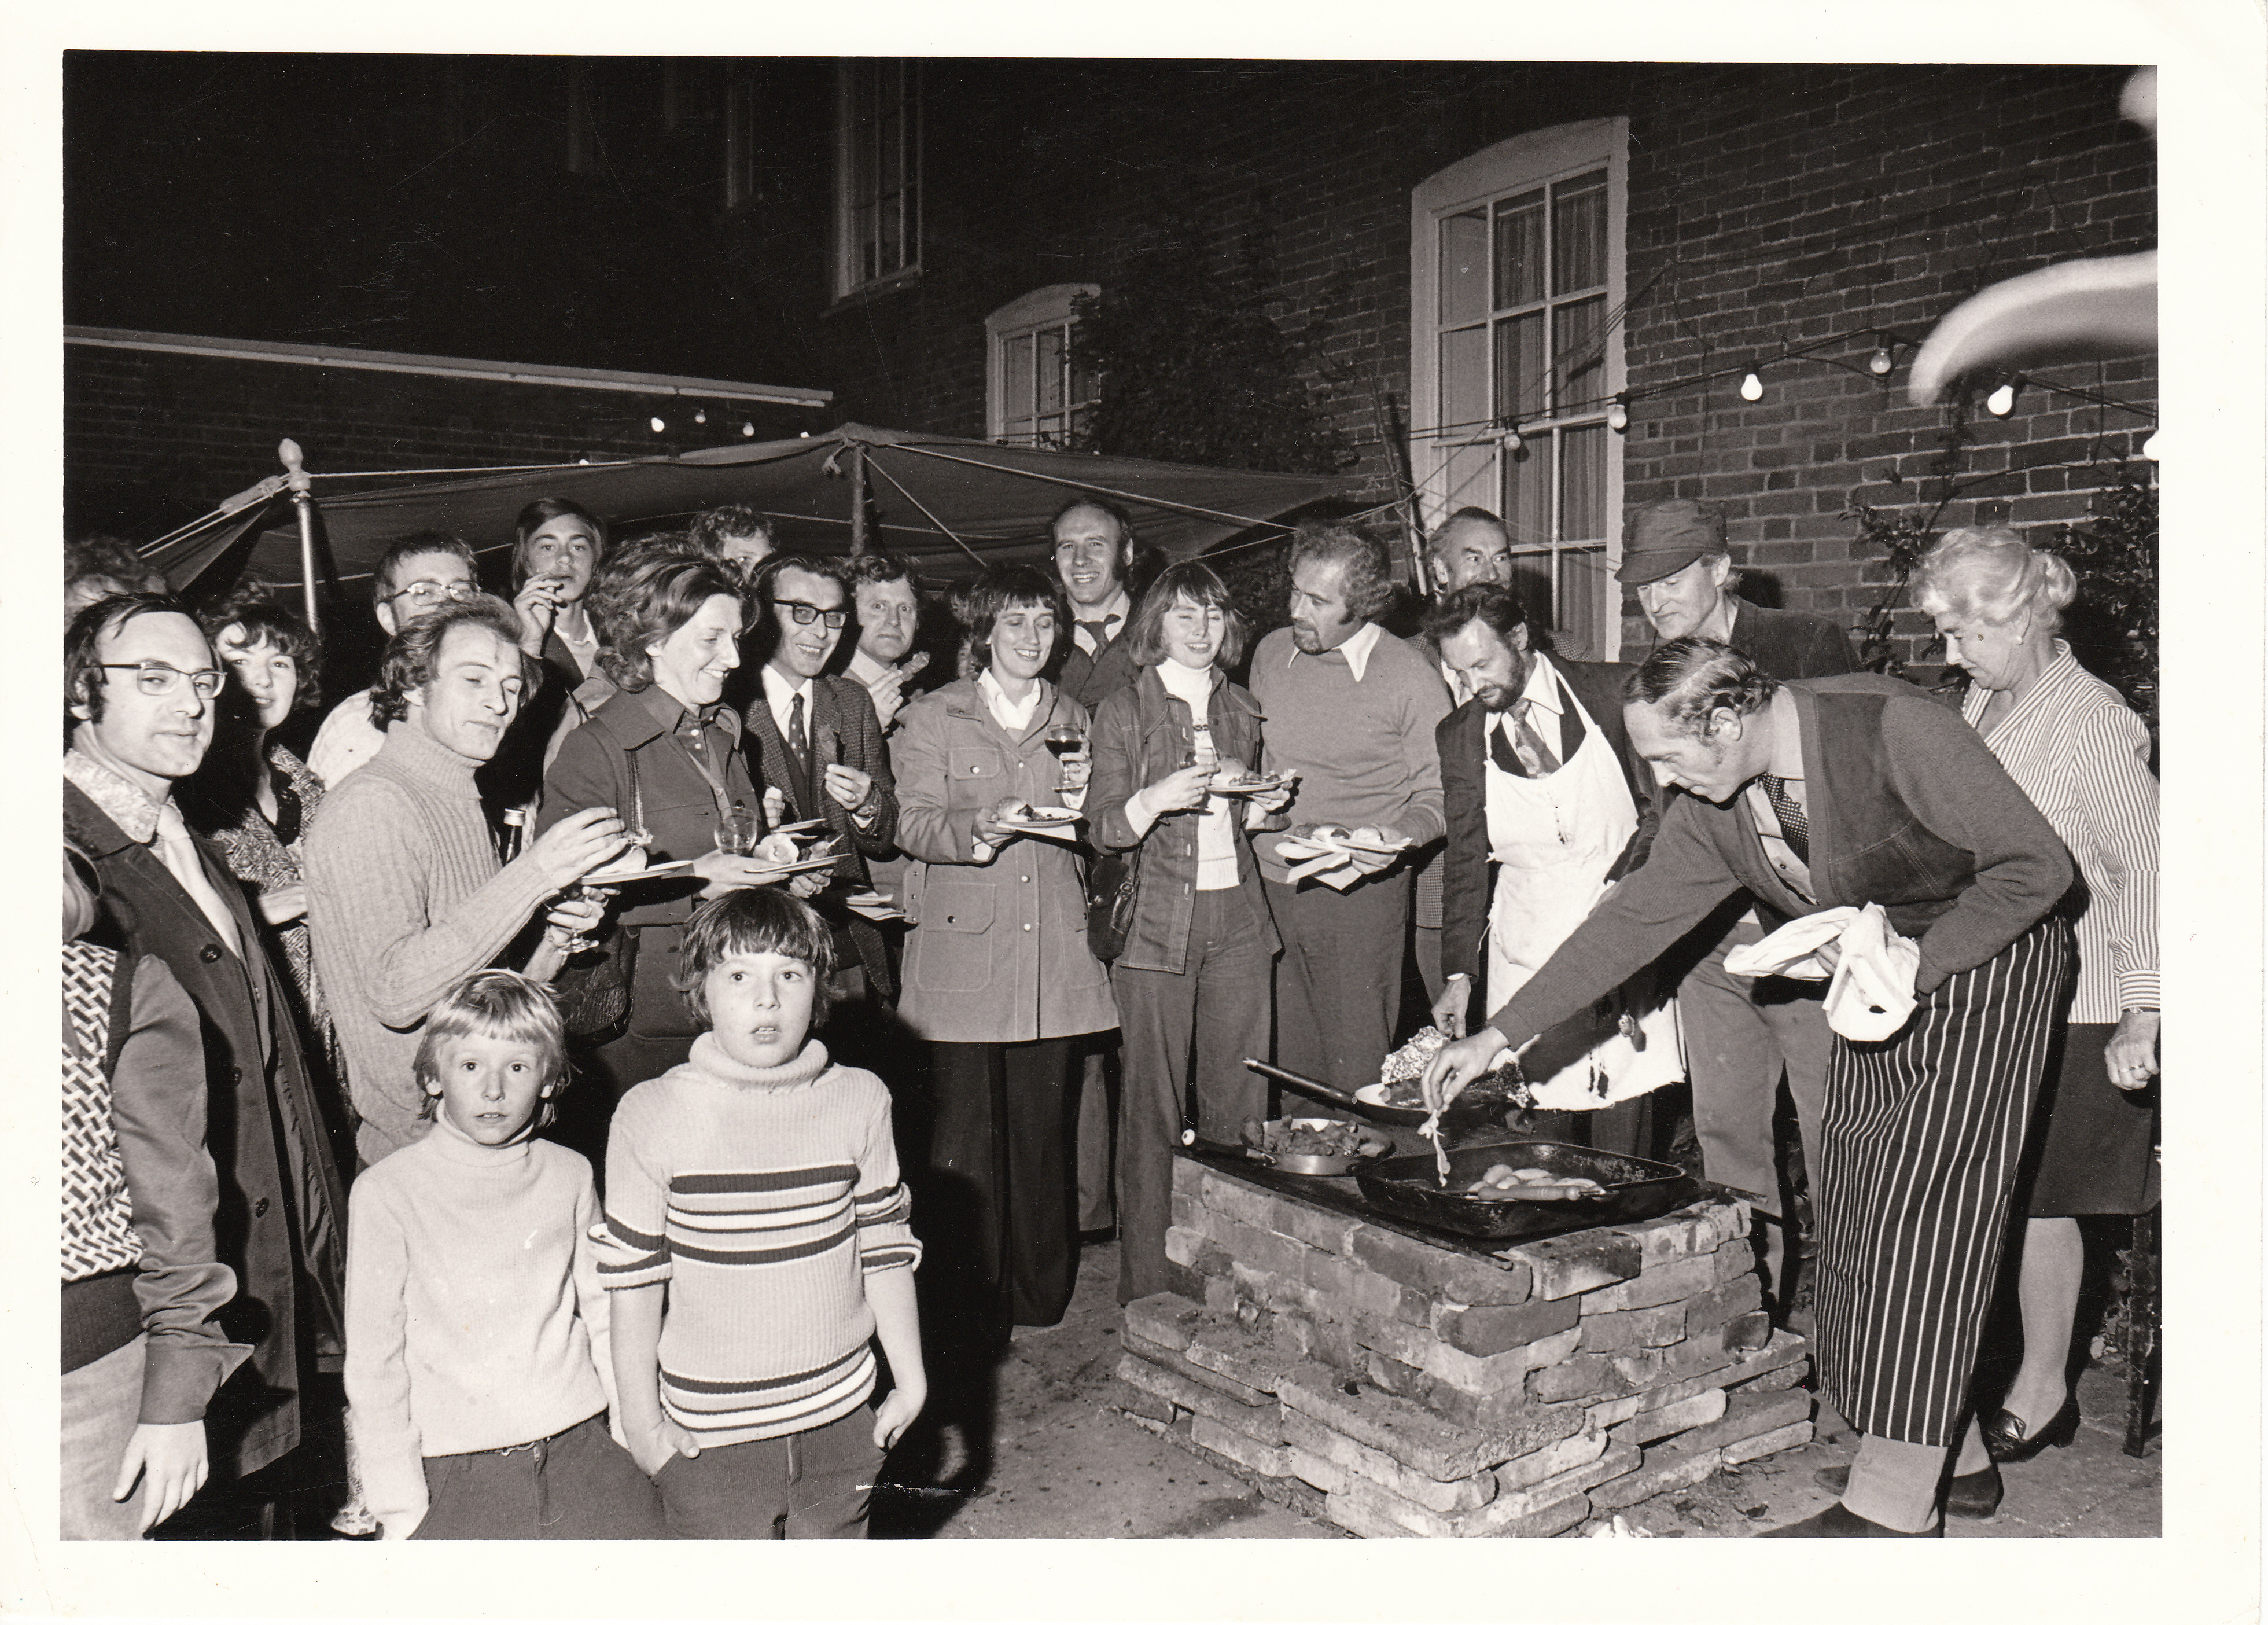 Barbecue at Winchelsea House September 1972